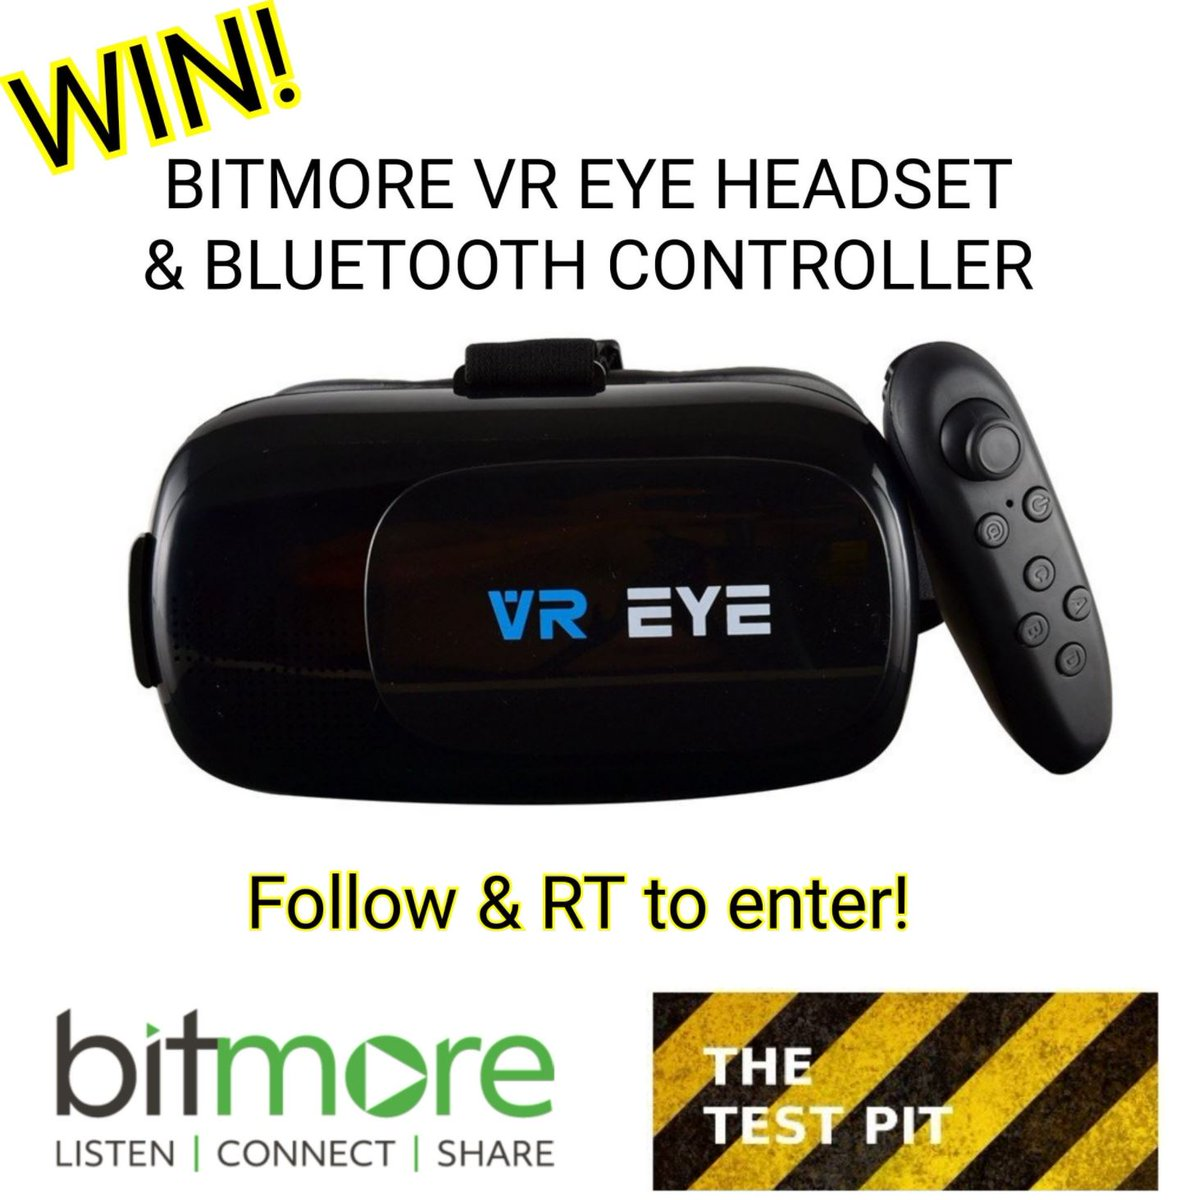 Our latest #competition is to #win a #VR headset and Bluetooth controller from @bitmoreuk Follow &amp; RT to enter!  http://www. thetestpit.com/2017/11/compet ition-bitmore-vr-eye-headset-and.html &nbsp; … <br>http://pic.twitter.com/5XPIsMhoFY